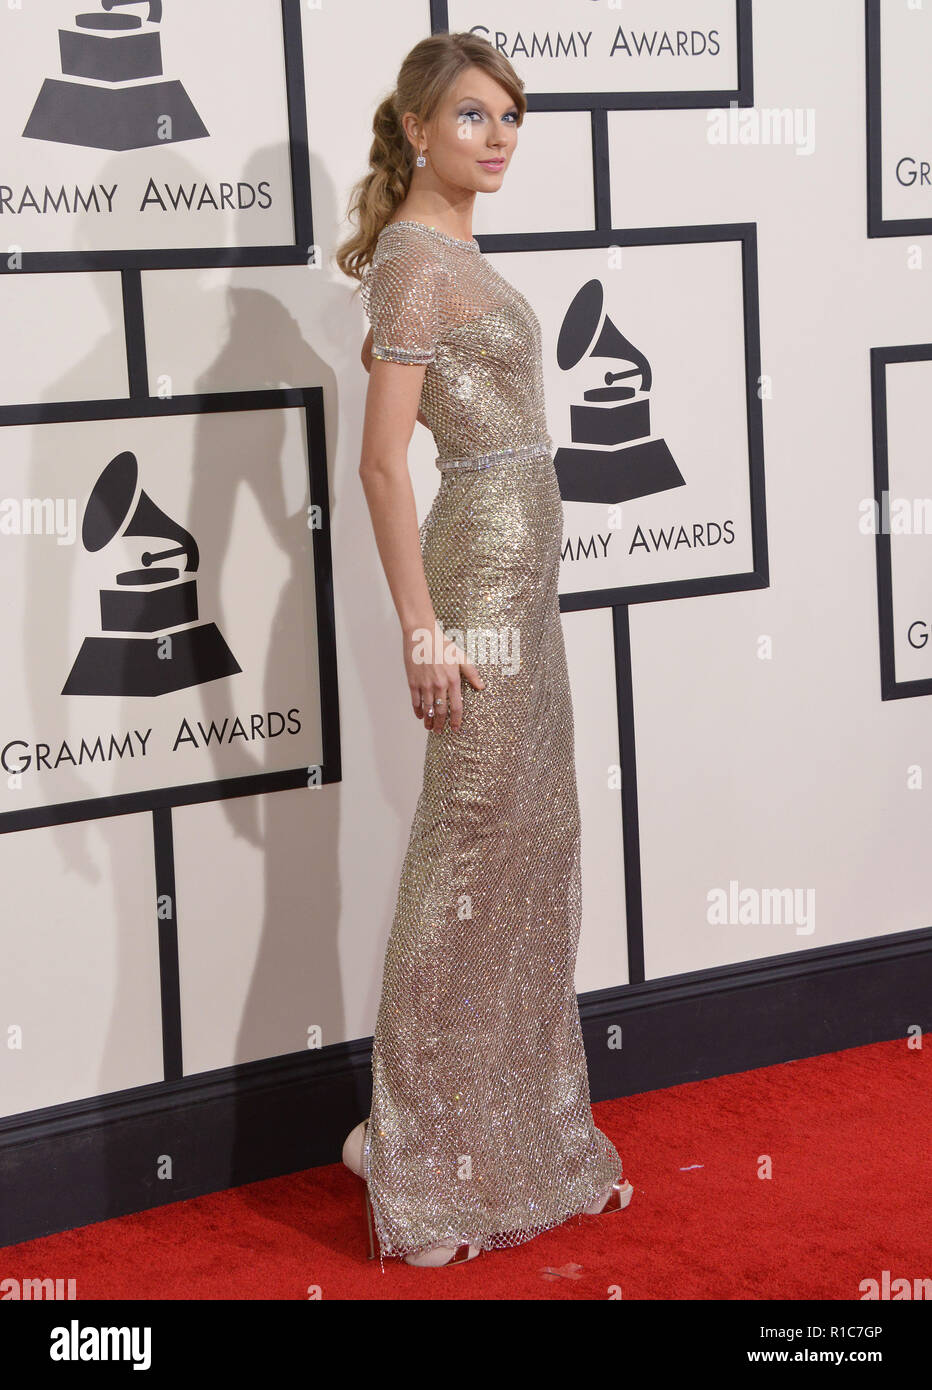 Taylor Swift Arriving At The 56th Annual Grammy Awards 2014 At The Staple Center In Los Angeles Taylor Swift 131 Event In Hollywood Life California Red Carpet Event Usa Film Industry Celebrities